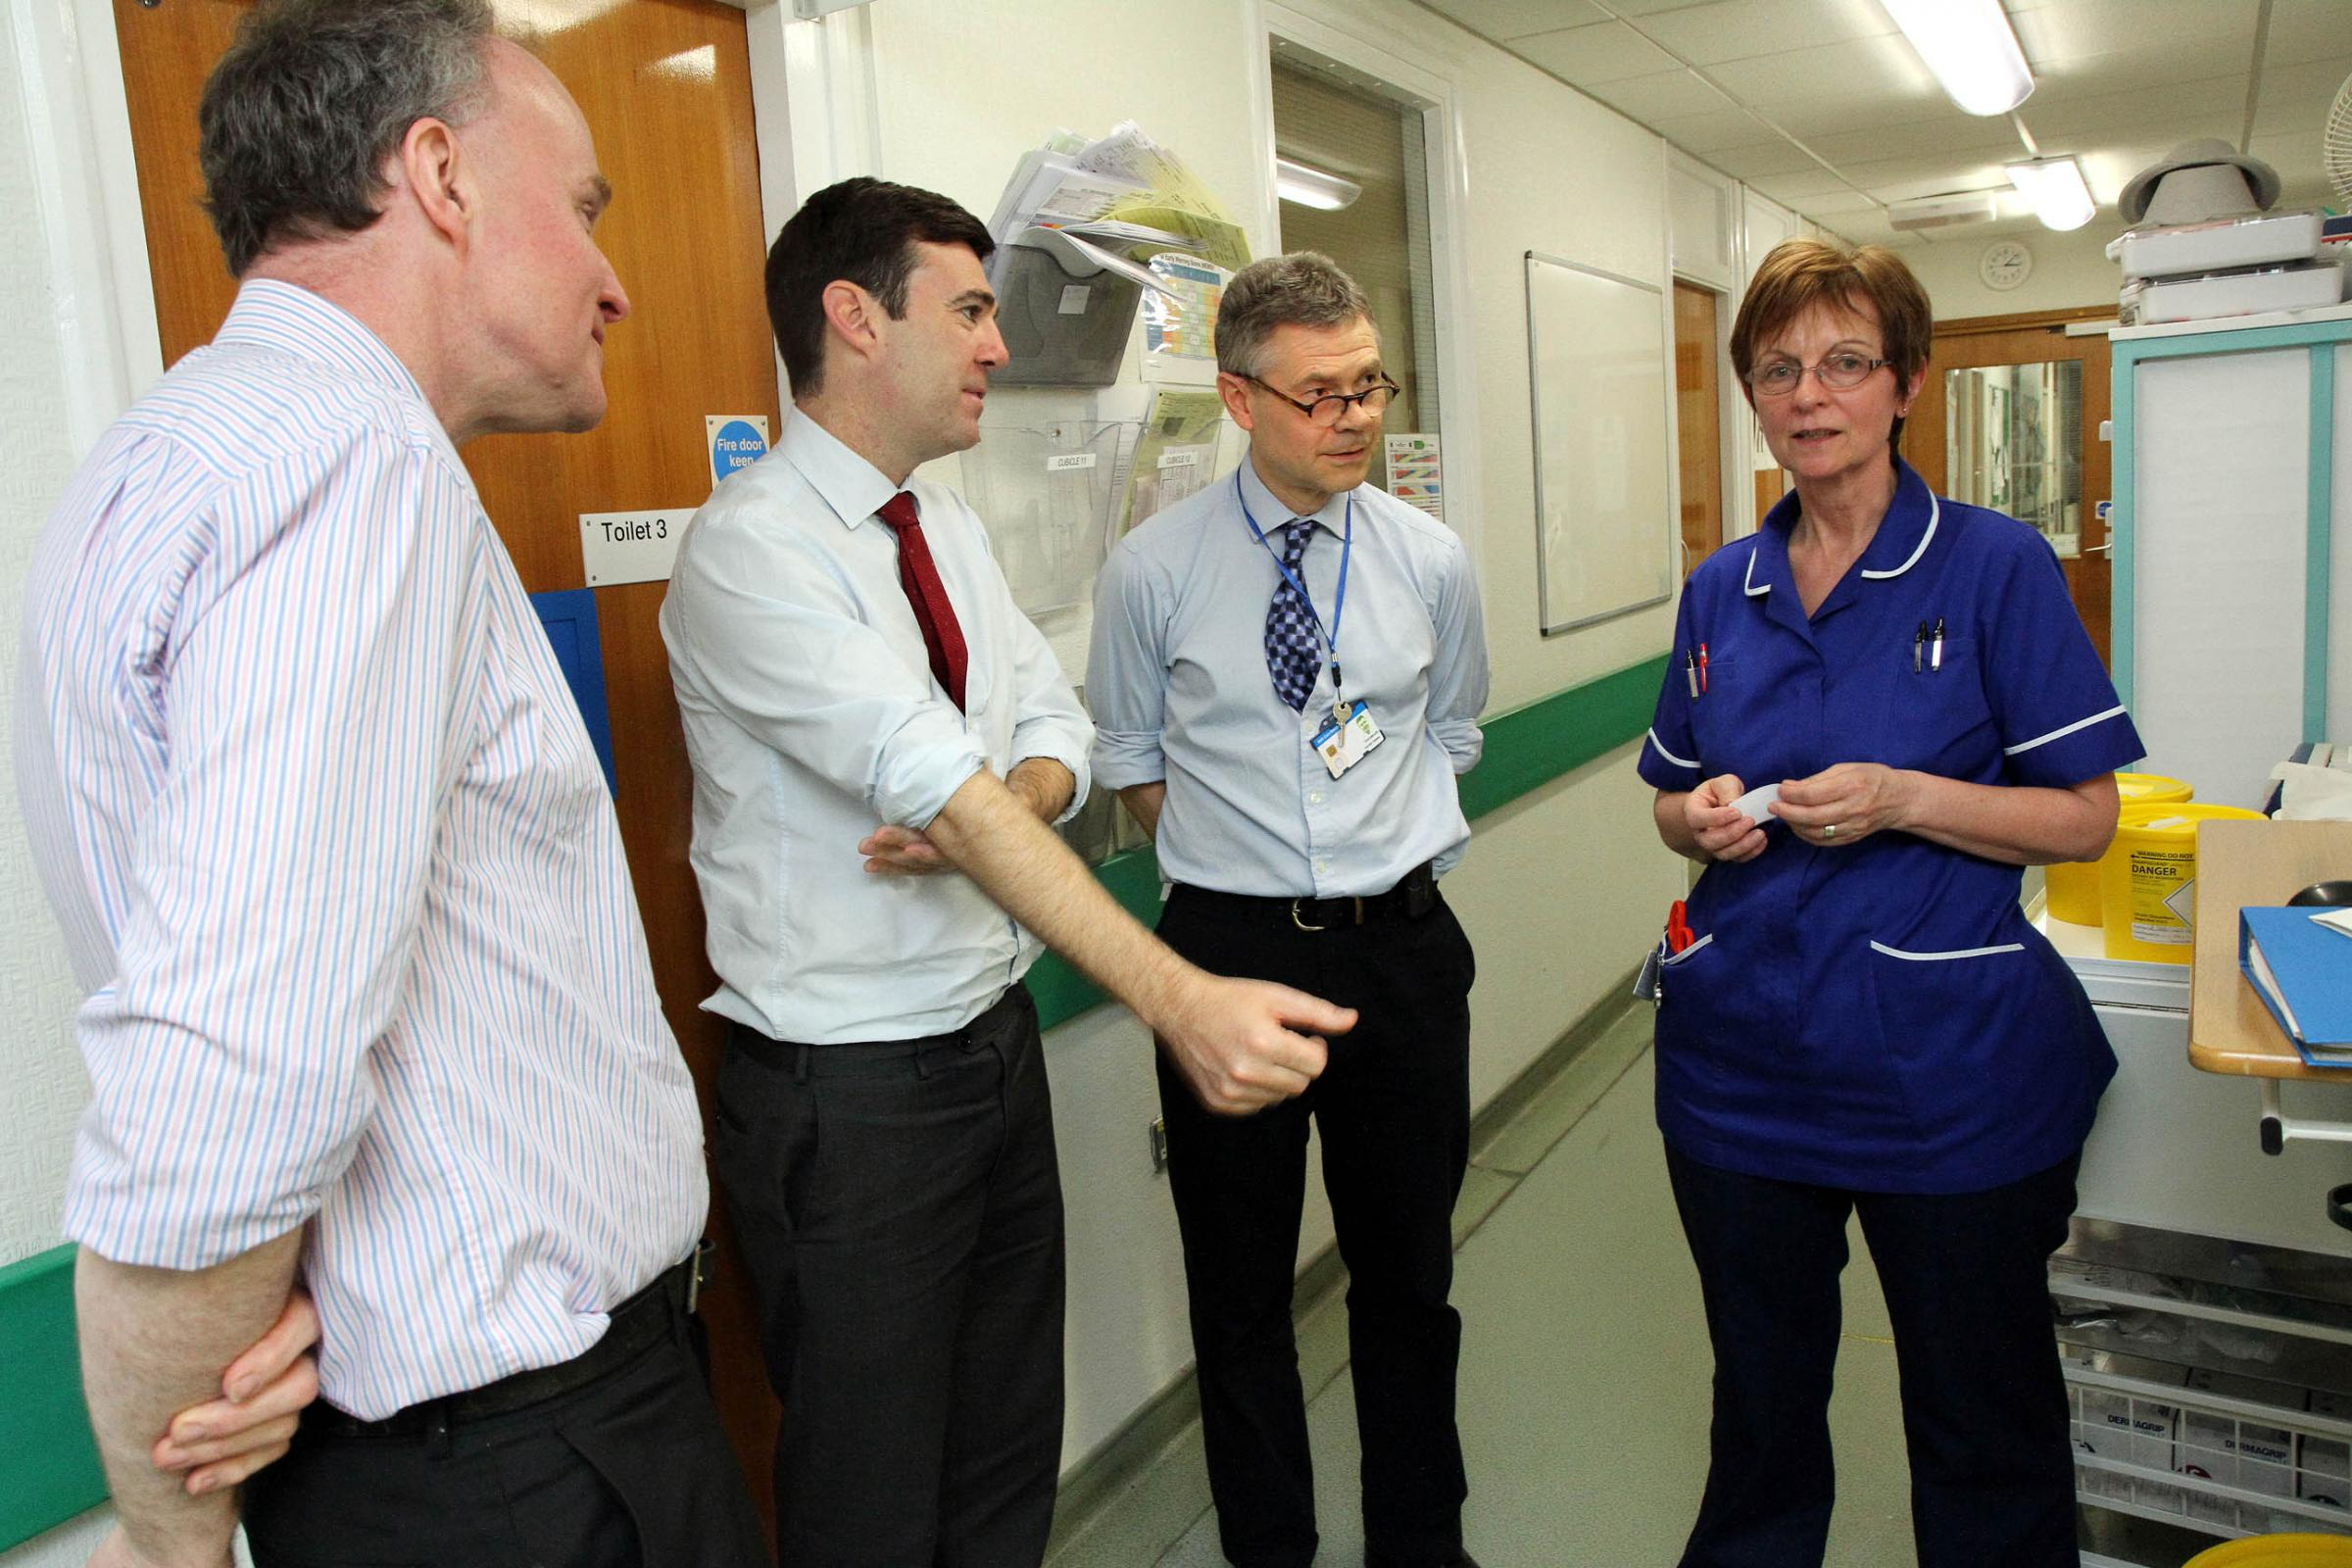 Labour's prospective parliamentary candidate for Keighley John Grogan, left, joins shadow health secretary Andy Burnham as he talks to A&E nurse Jane Howling and interim medical director Dr Harold Hosker, third from left, during his visit to Airedale Ho